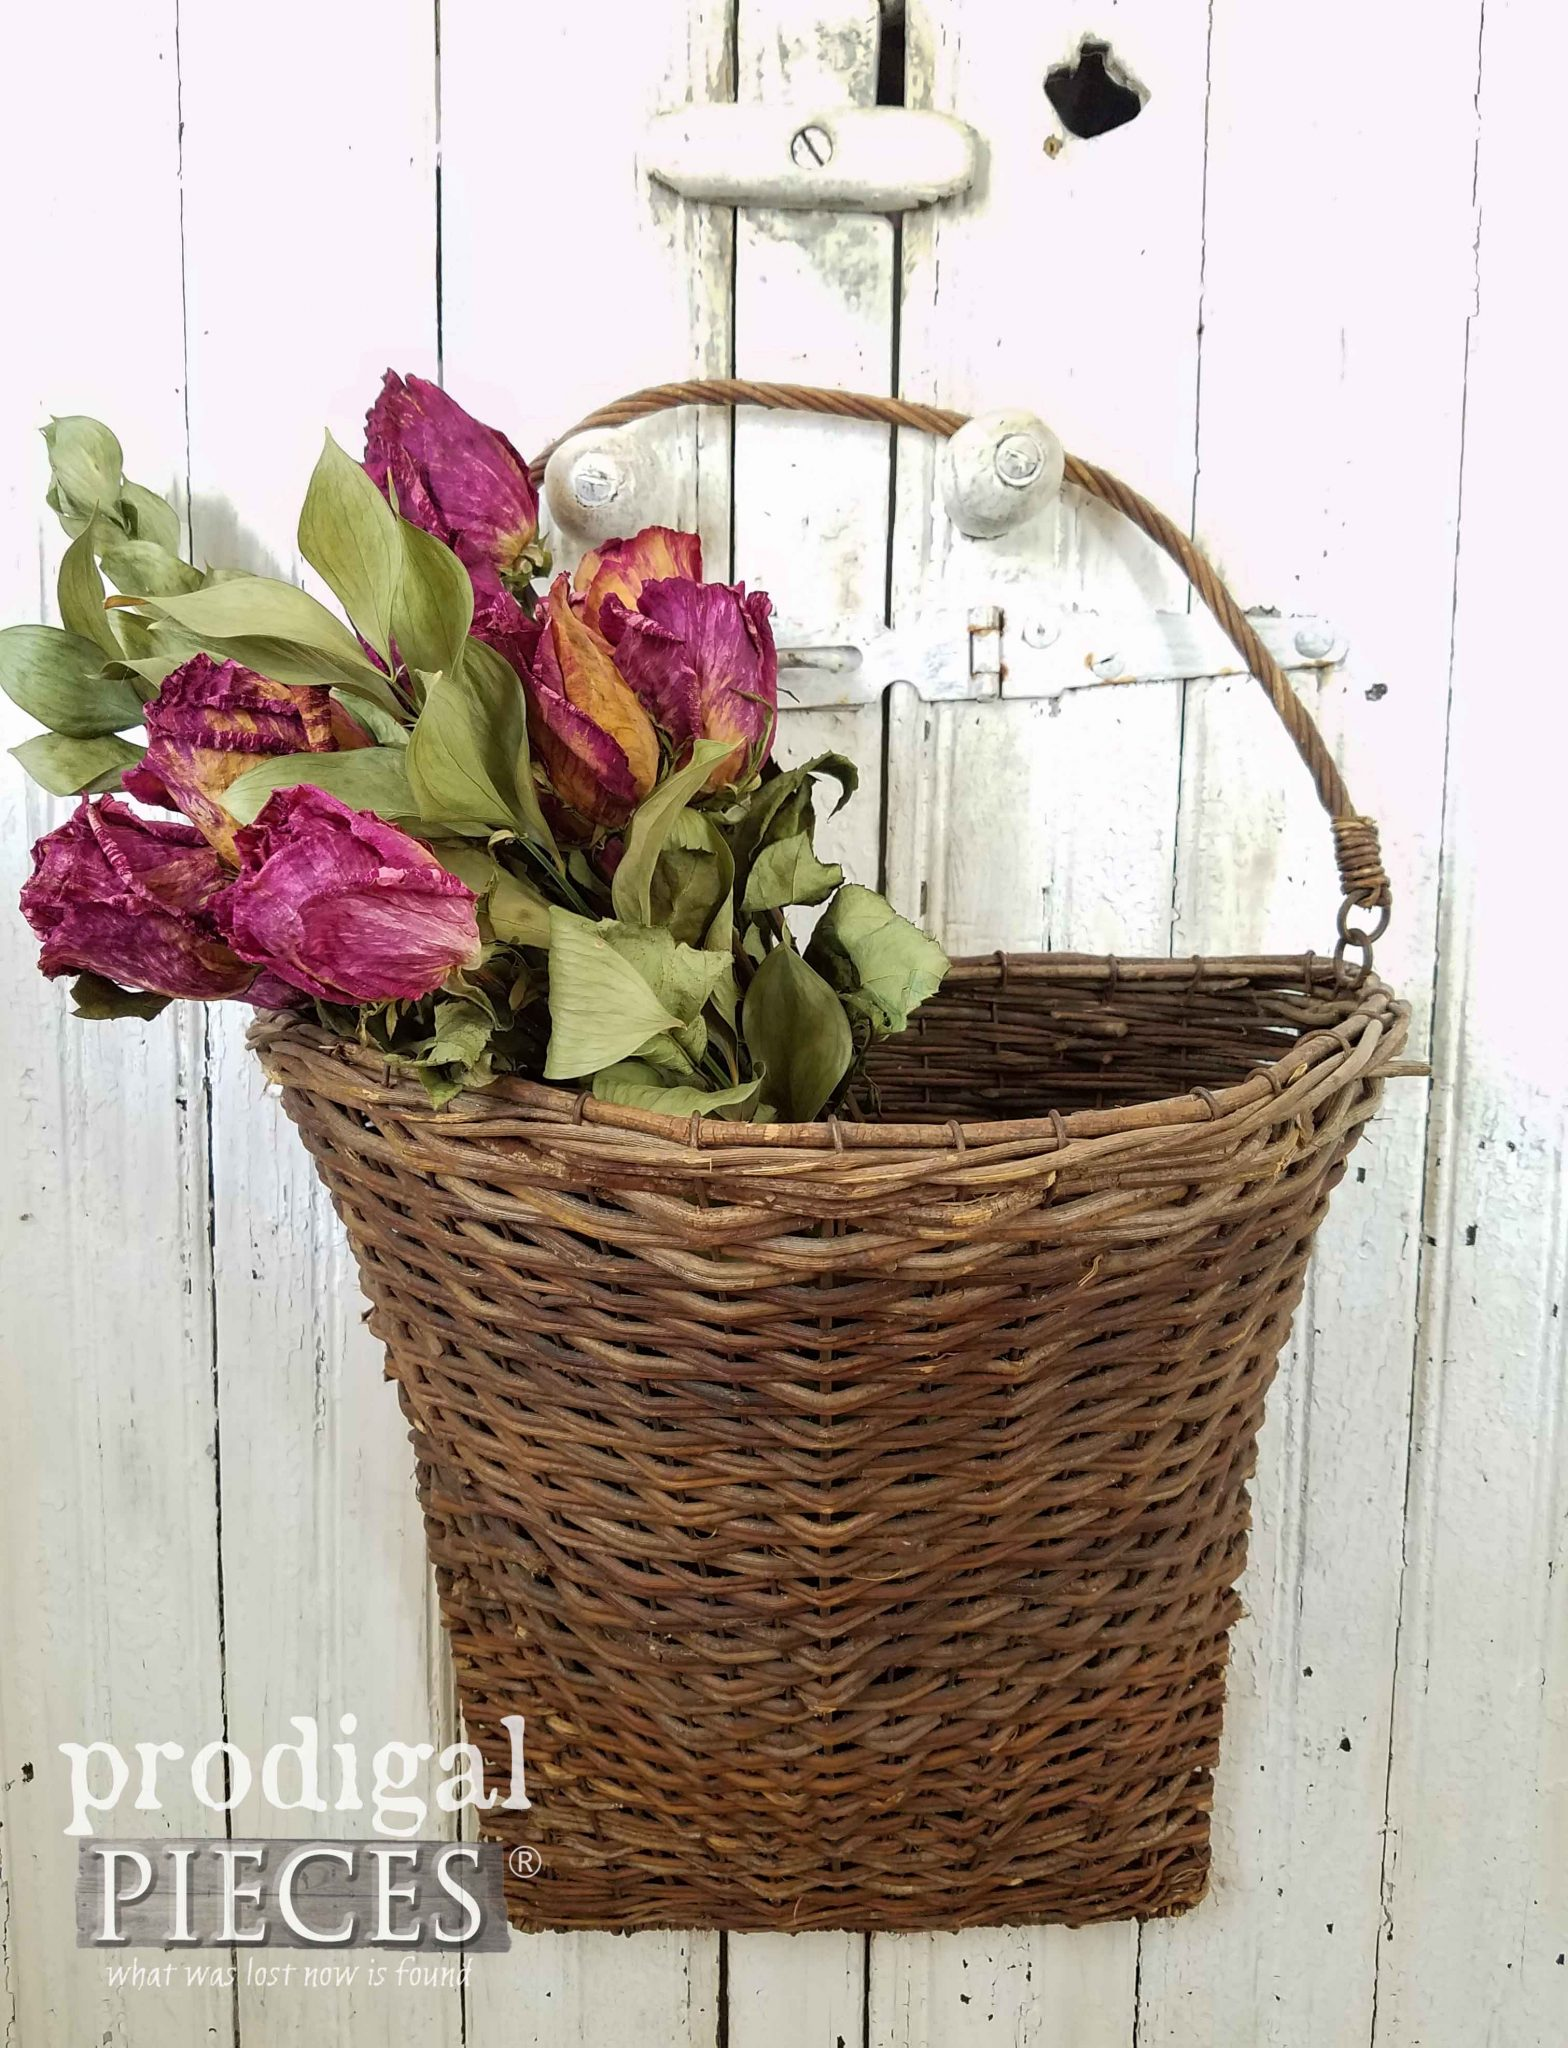 Basket of Roses by Prodigal Pieces | prodigalpieces.com